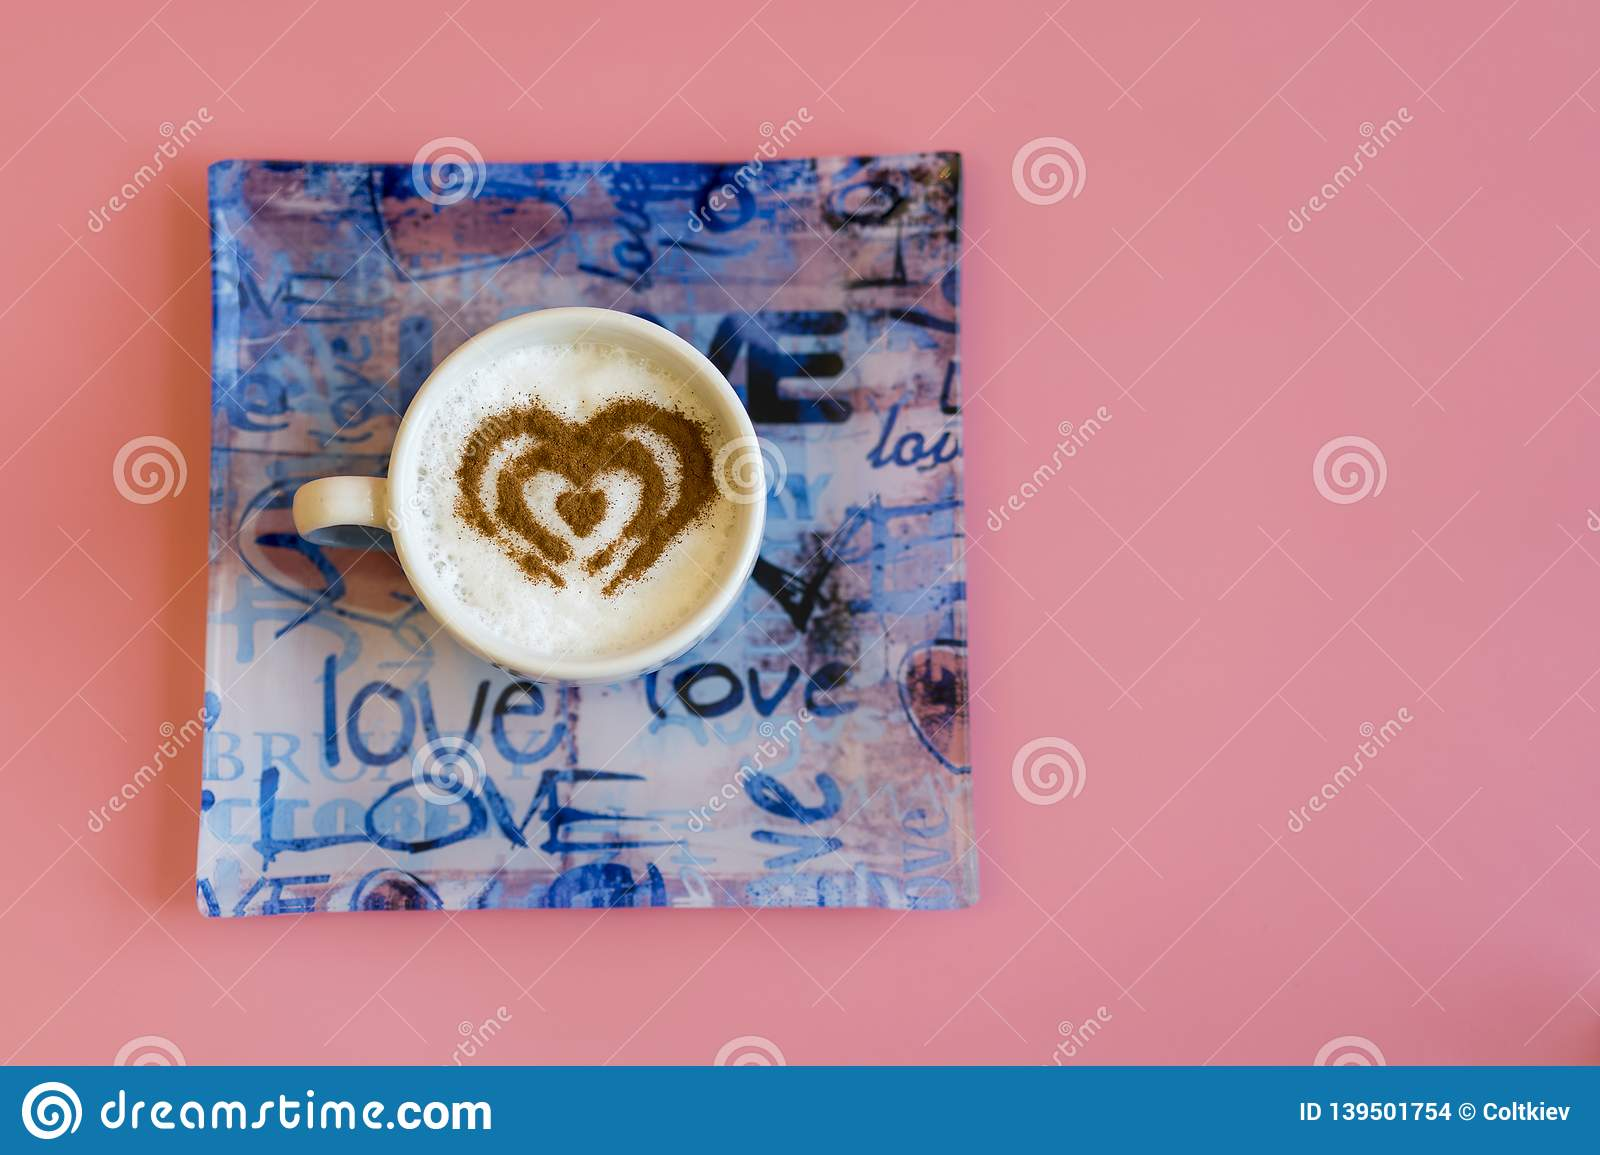 Heart Shape Coffee Cup Concept isolated on pink background. love cup , heart drawing on latte art coffee. copy space